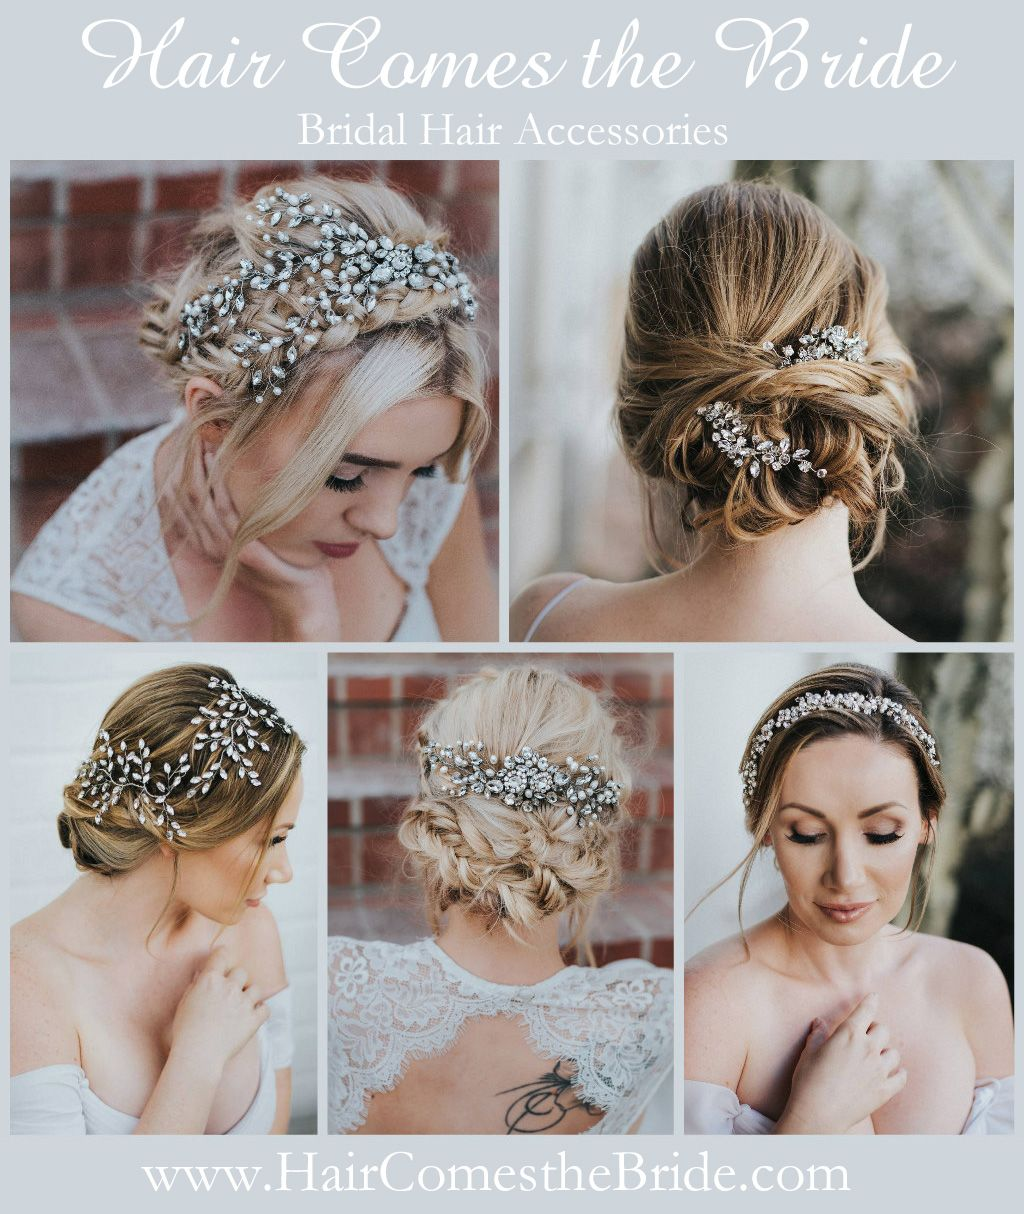 designer bridal hair accessories including a beautiful